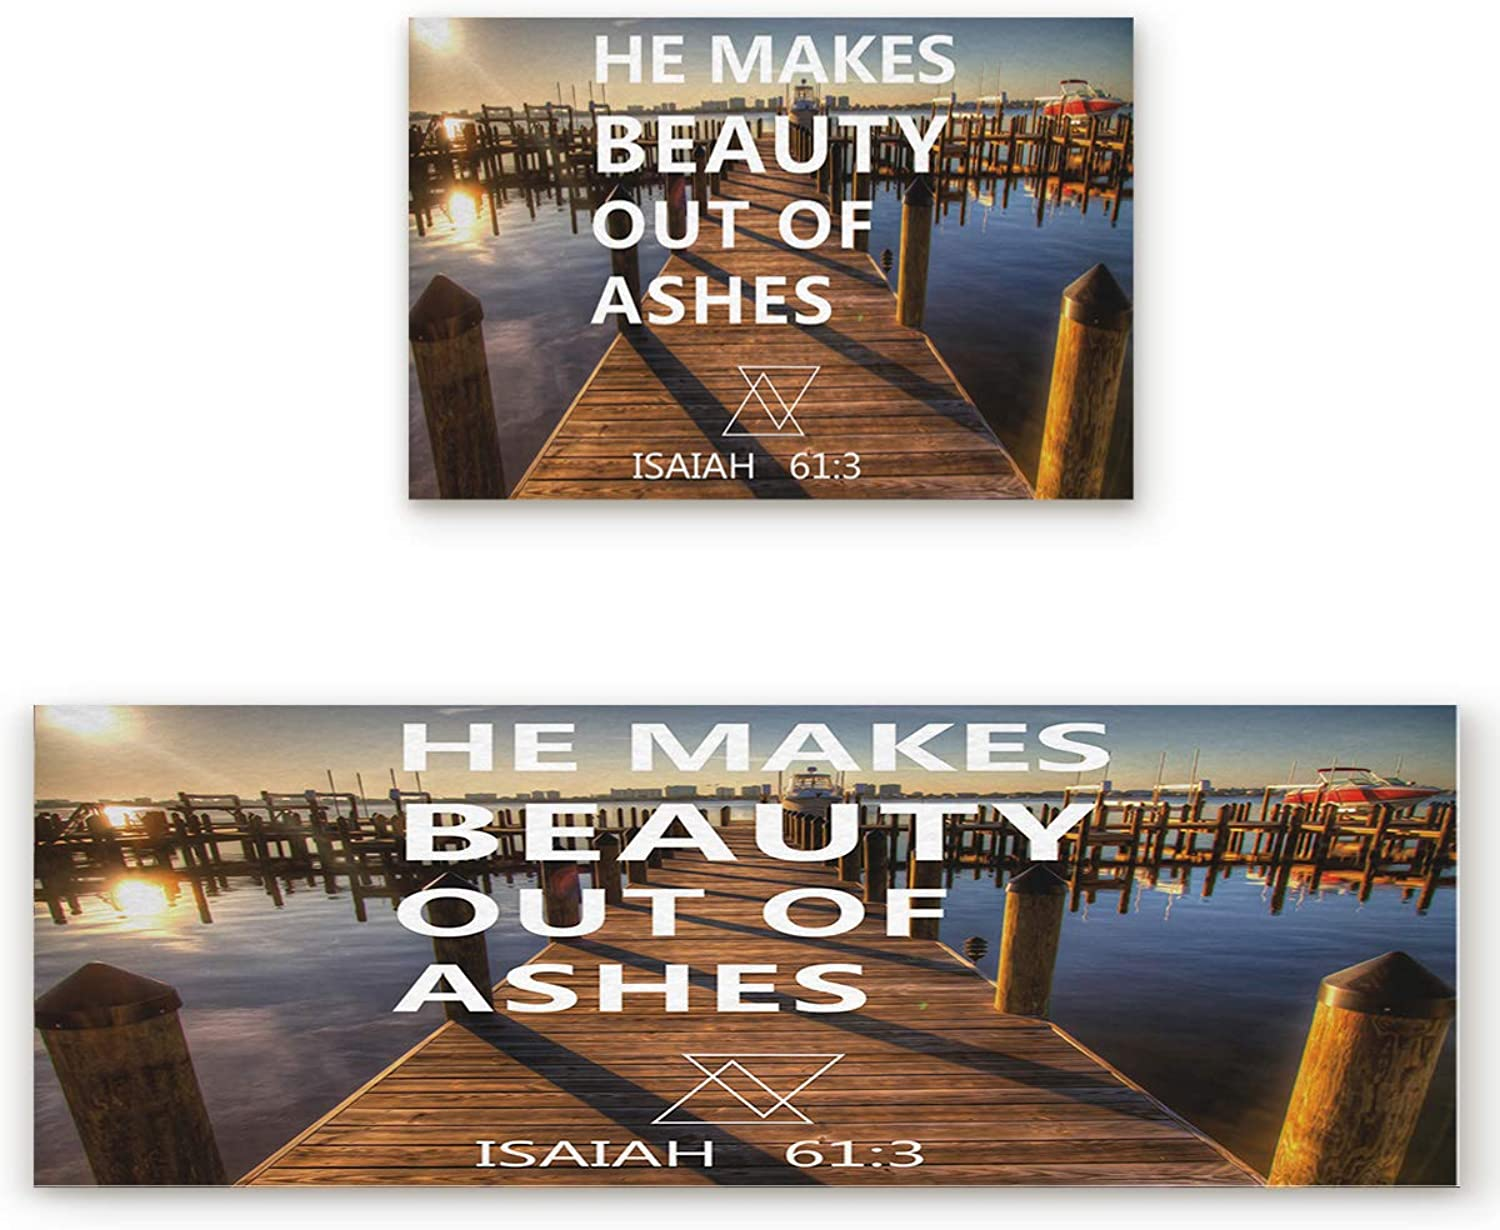 2 Piece Non-Slip Kitchen Bathroom Entrance Mat Absorbent Durable Floor Doormat Runner Rug Set - Seaside Boardwalk Yacht Sunny View Bible Proverb He Maks Beauty Out of Ashes